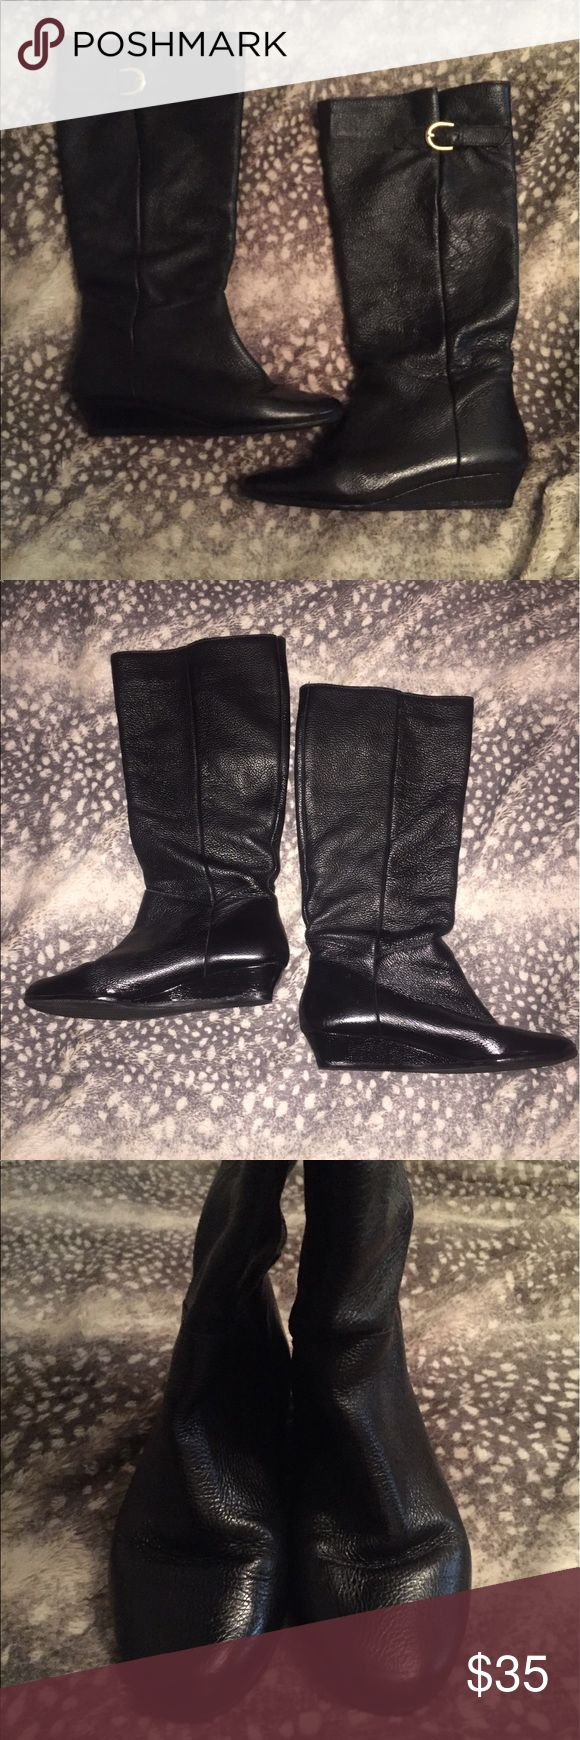 Steve Madden Size 7 Black Intyce Boots Women's size 7, black textured leather wedge boot with gold side-buckle. The side buckle strap has 3 holes to adjust to fit your calf. The leather is soft / flexible, so they tend to slouch on me, but the might stand up if your leg fills them out more. They look good either way though. I just had them re-soled at the cobbler and have not worn them since. Great, comfy, everyday boot. Steve Madden Shoes Heeled Boots